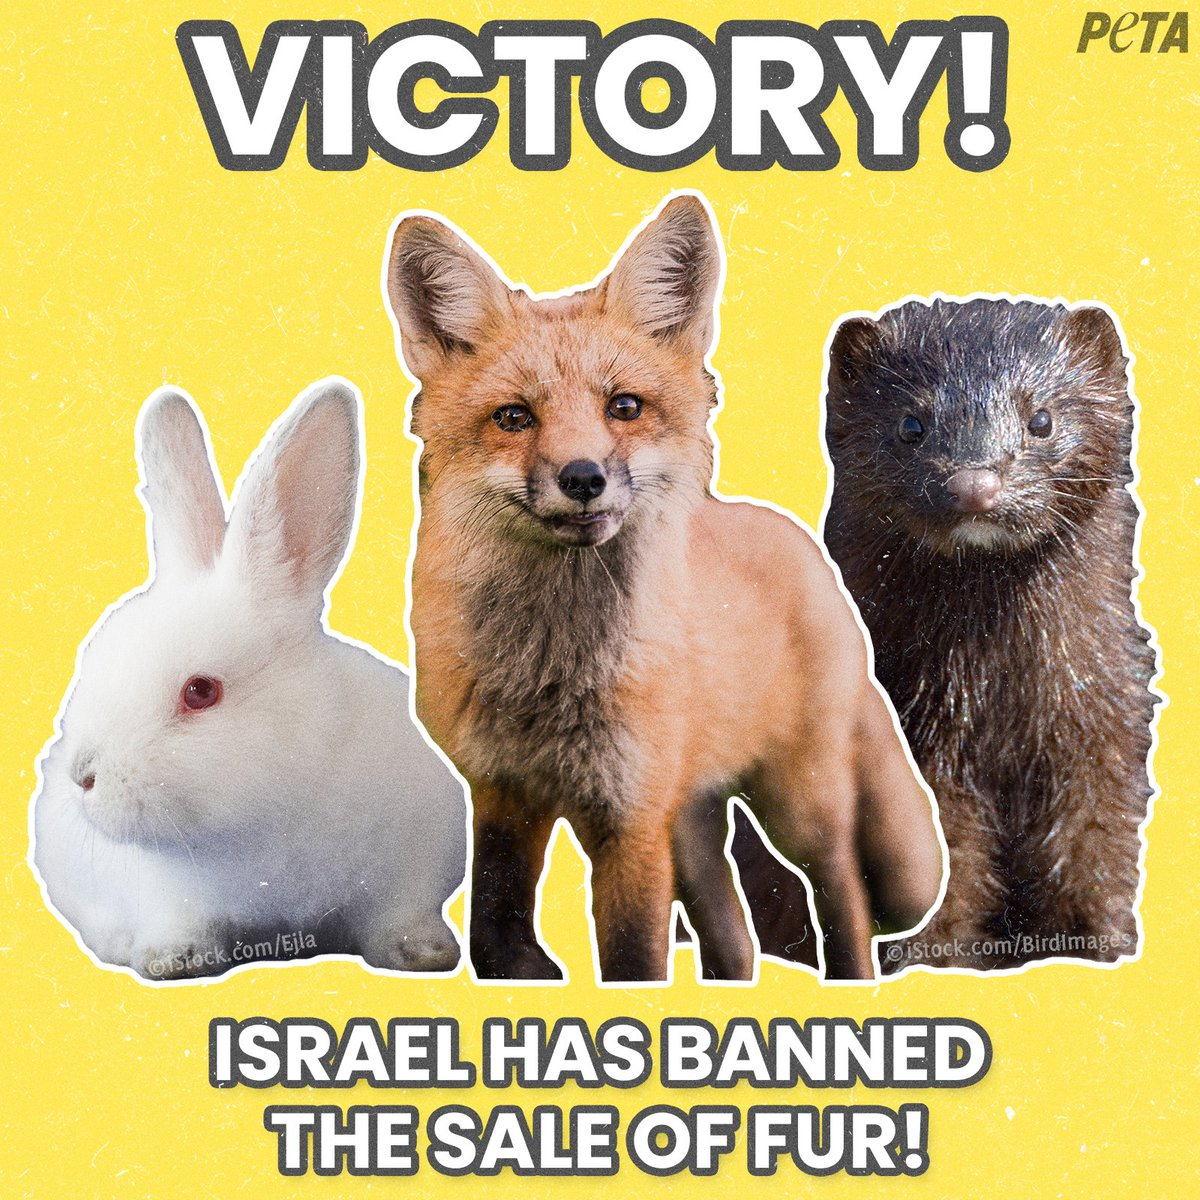 IT'S OFFICIAL:Israelhas become the first country in the world to ban the sale of fur!  This historic victory will protect countless foxes, minks, rabbits, and other animals from being violently killed for their skin. https://t.co/S9T5I5jfIP https://t.co/K6HBWq4NSC